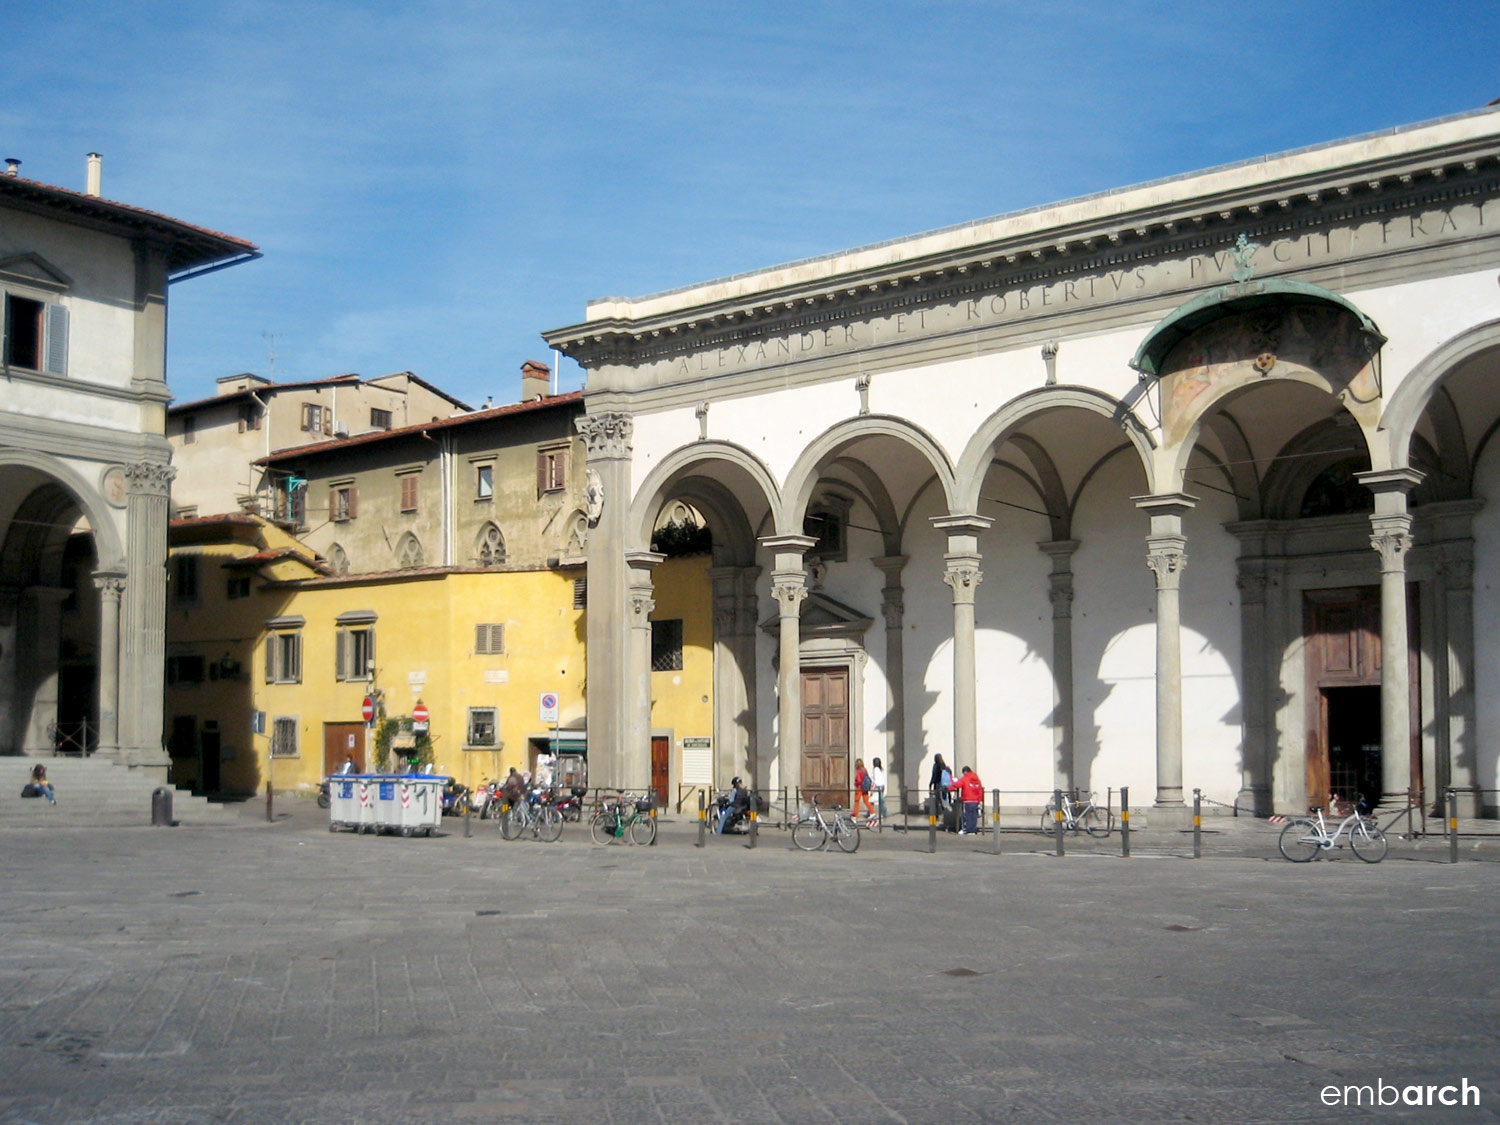 Hospital of the Innocents - view from piazza.